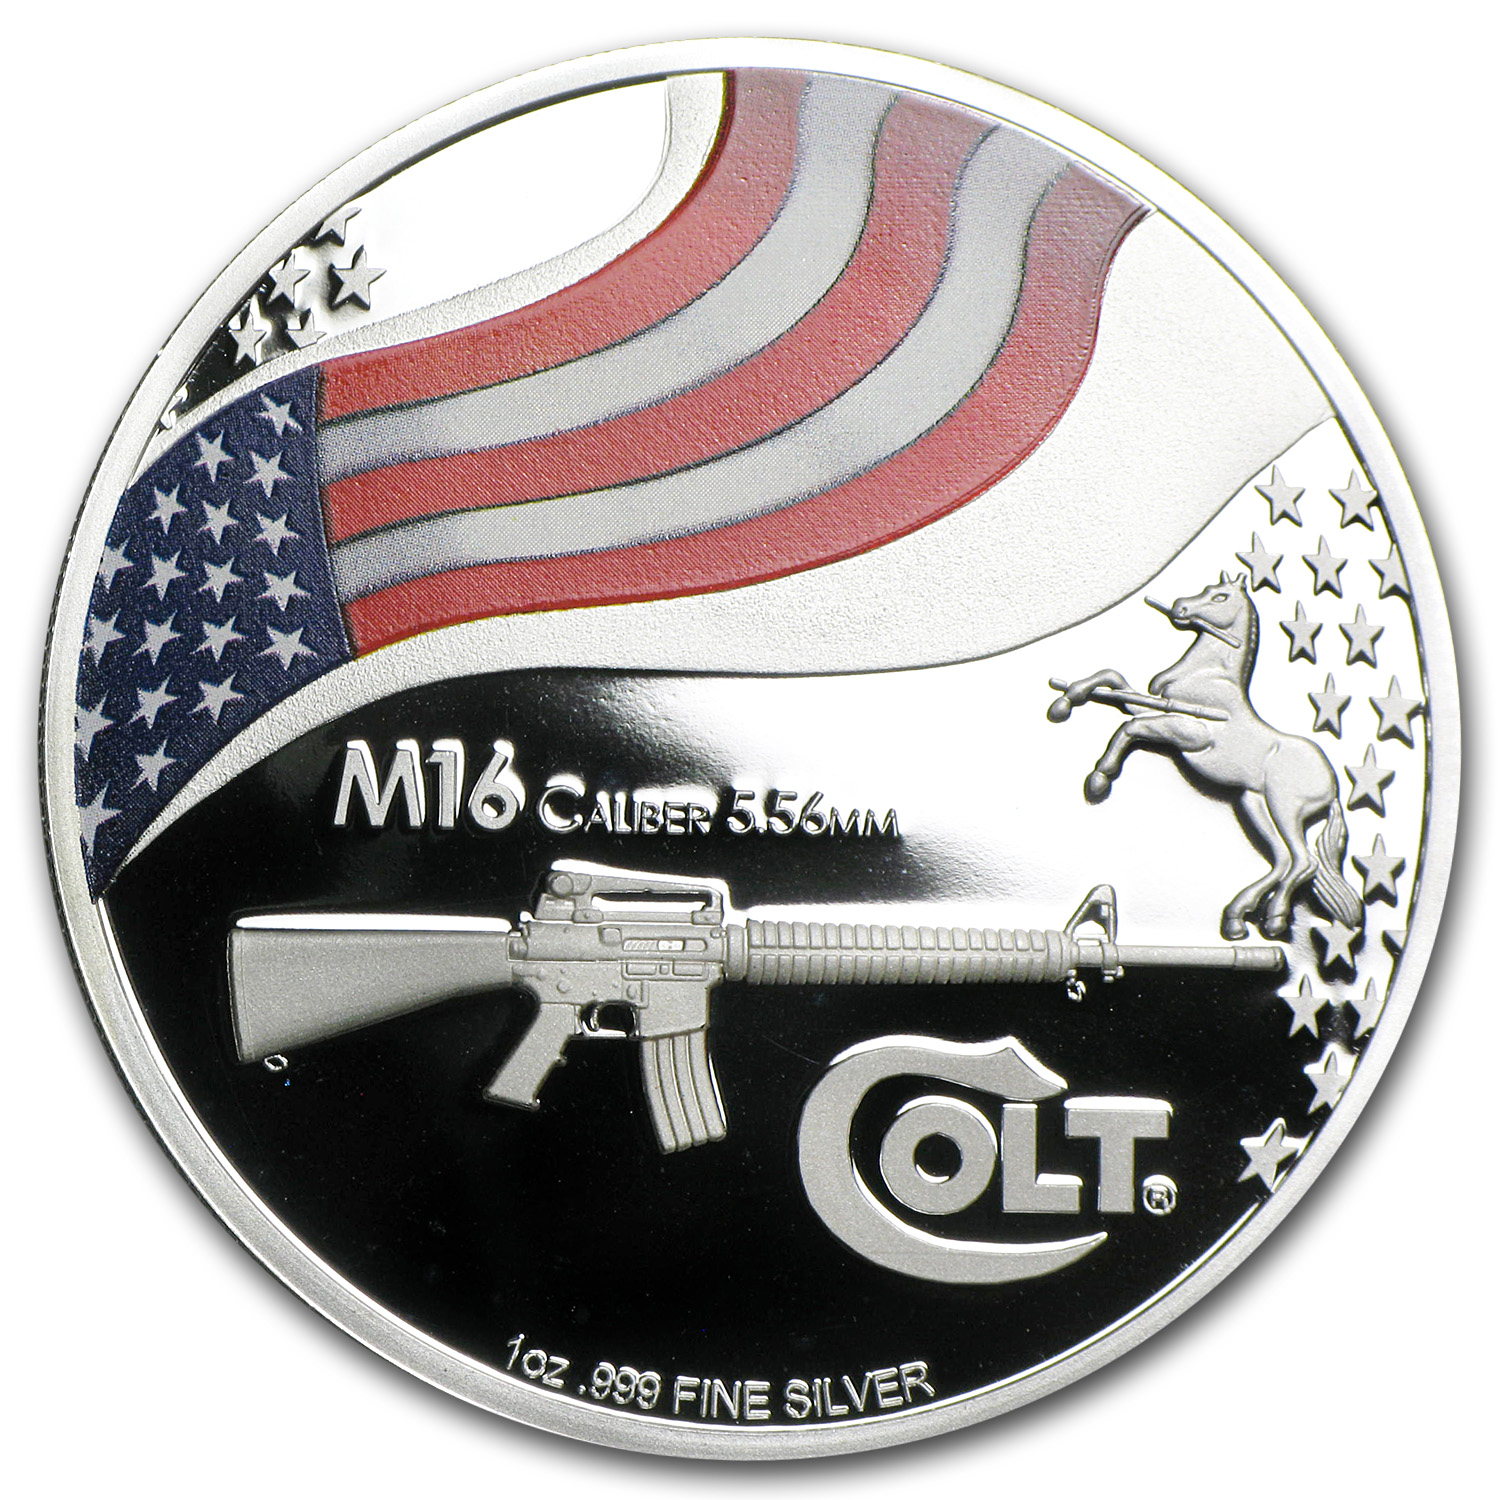 2010 New Zealand 1 oz Silver $5 American Colt M16 (w/Box & COA)